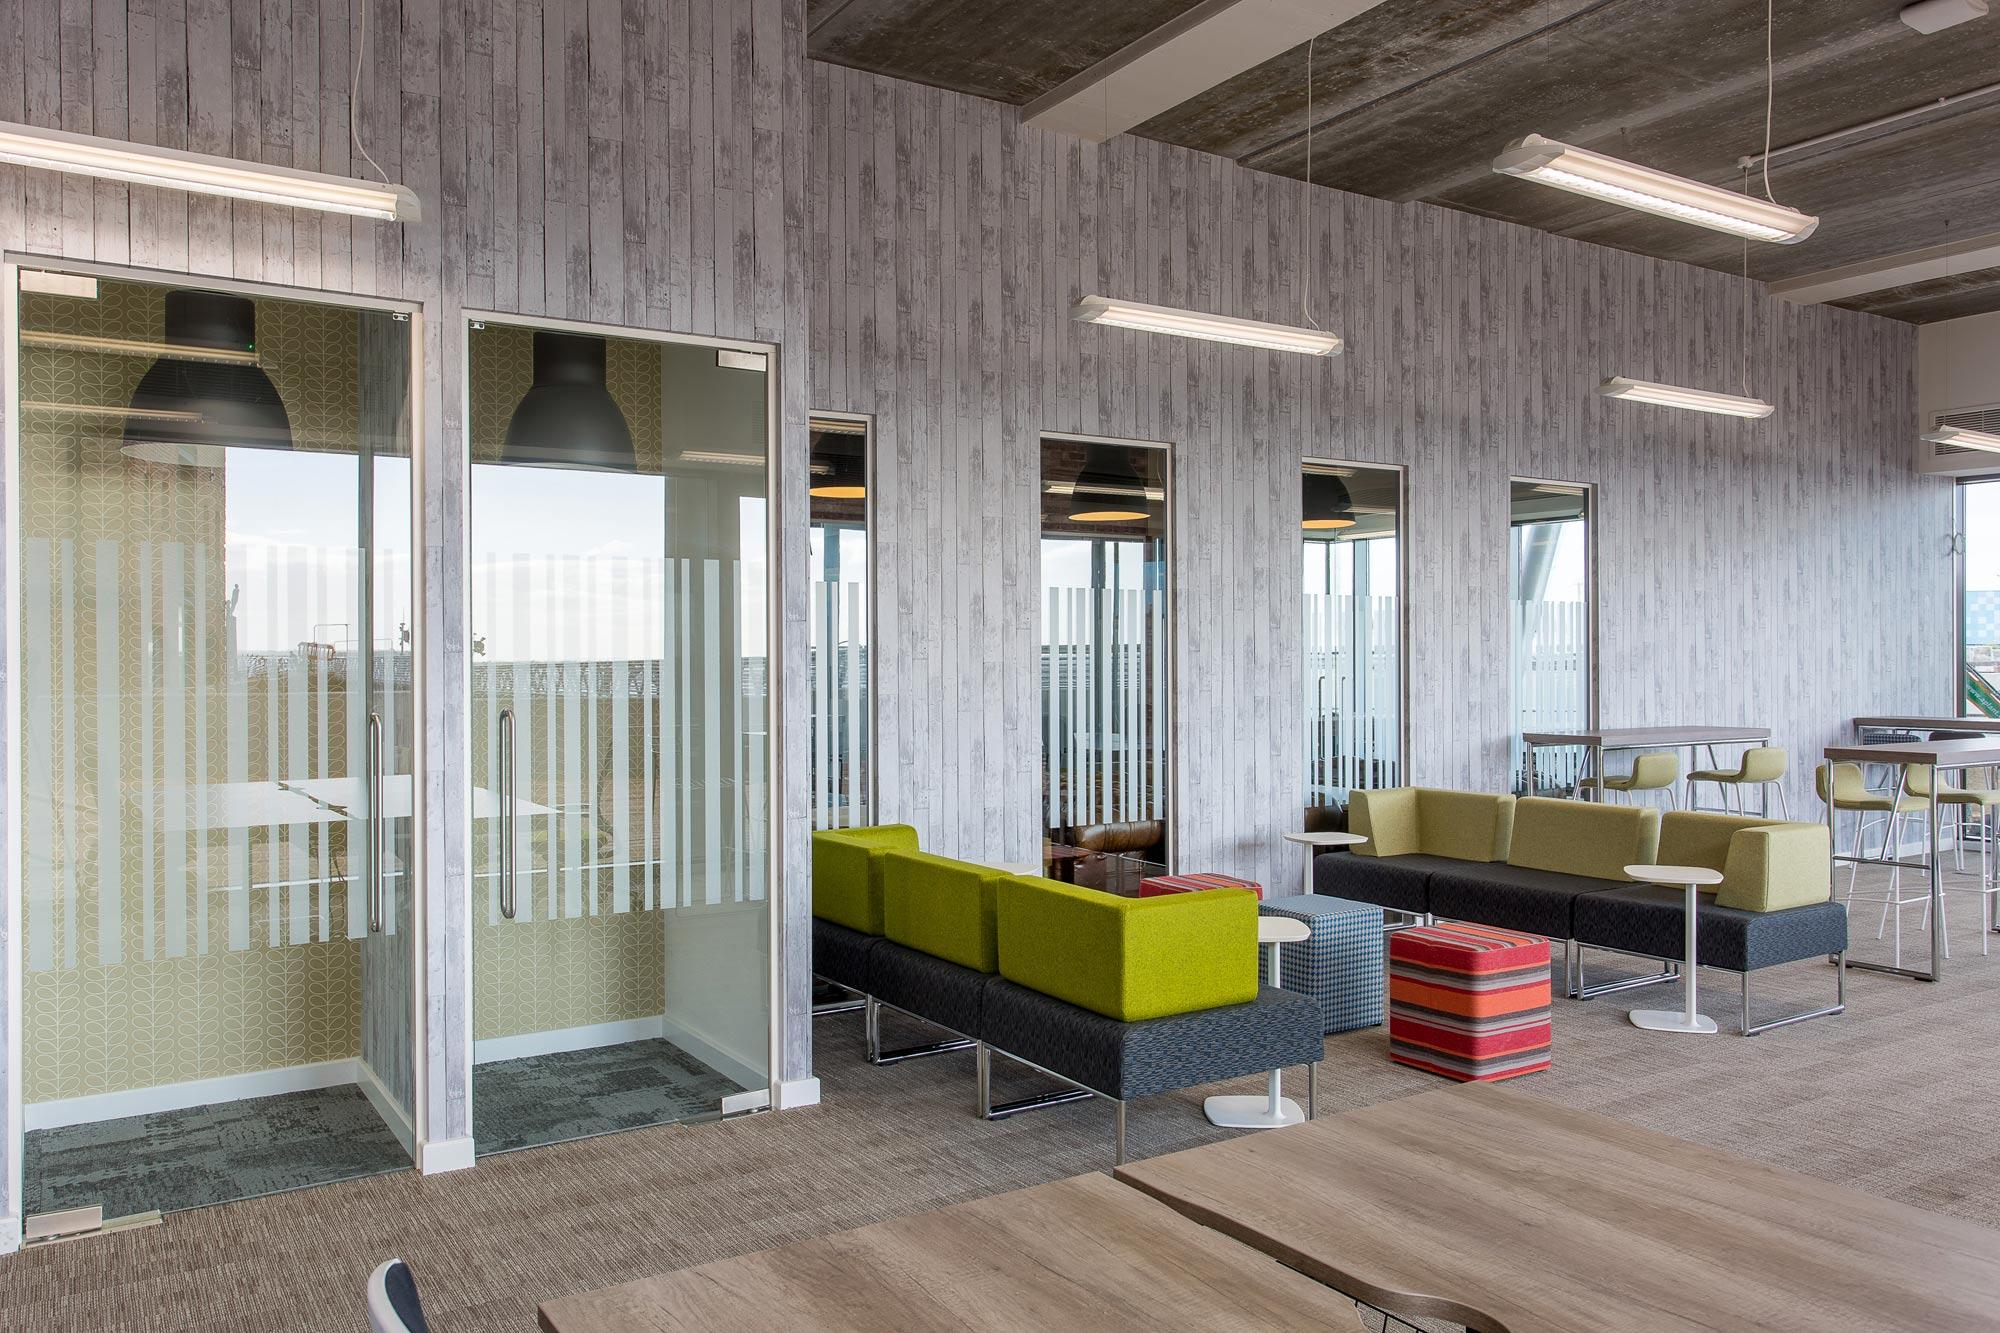 How pioneering digital technology companies are shaping commercial interior design